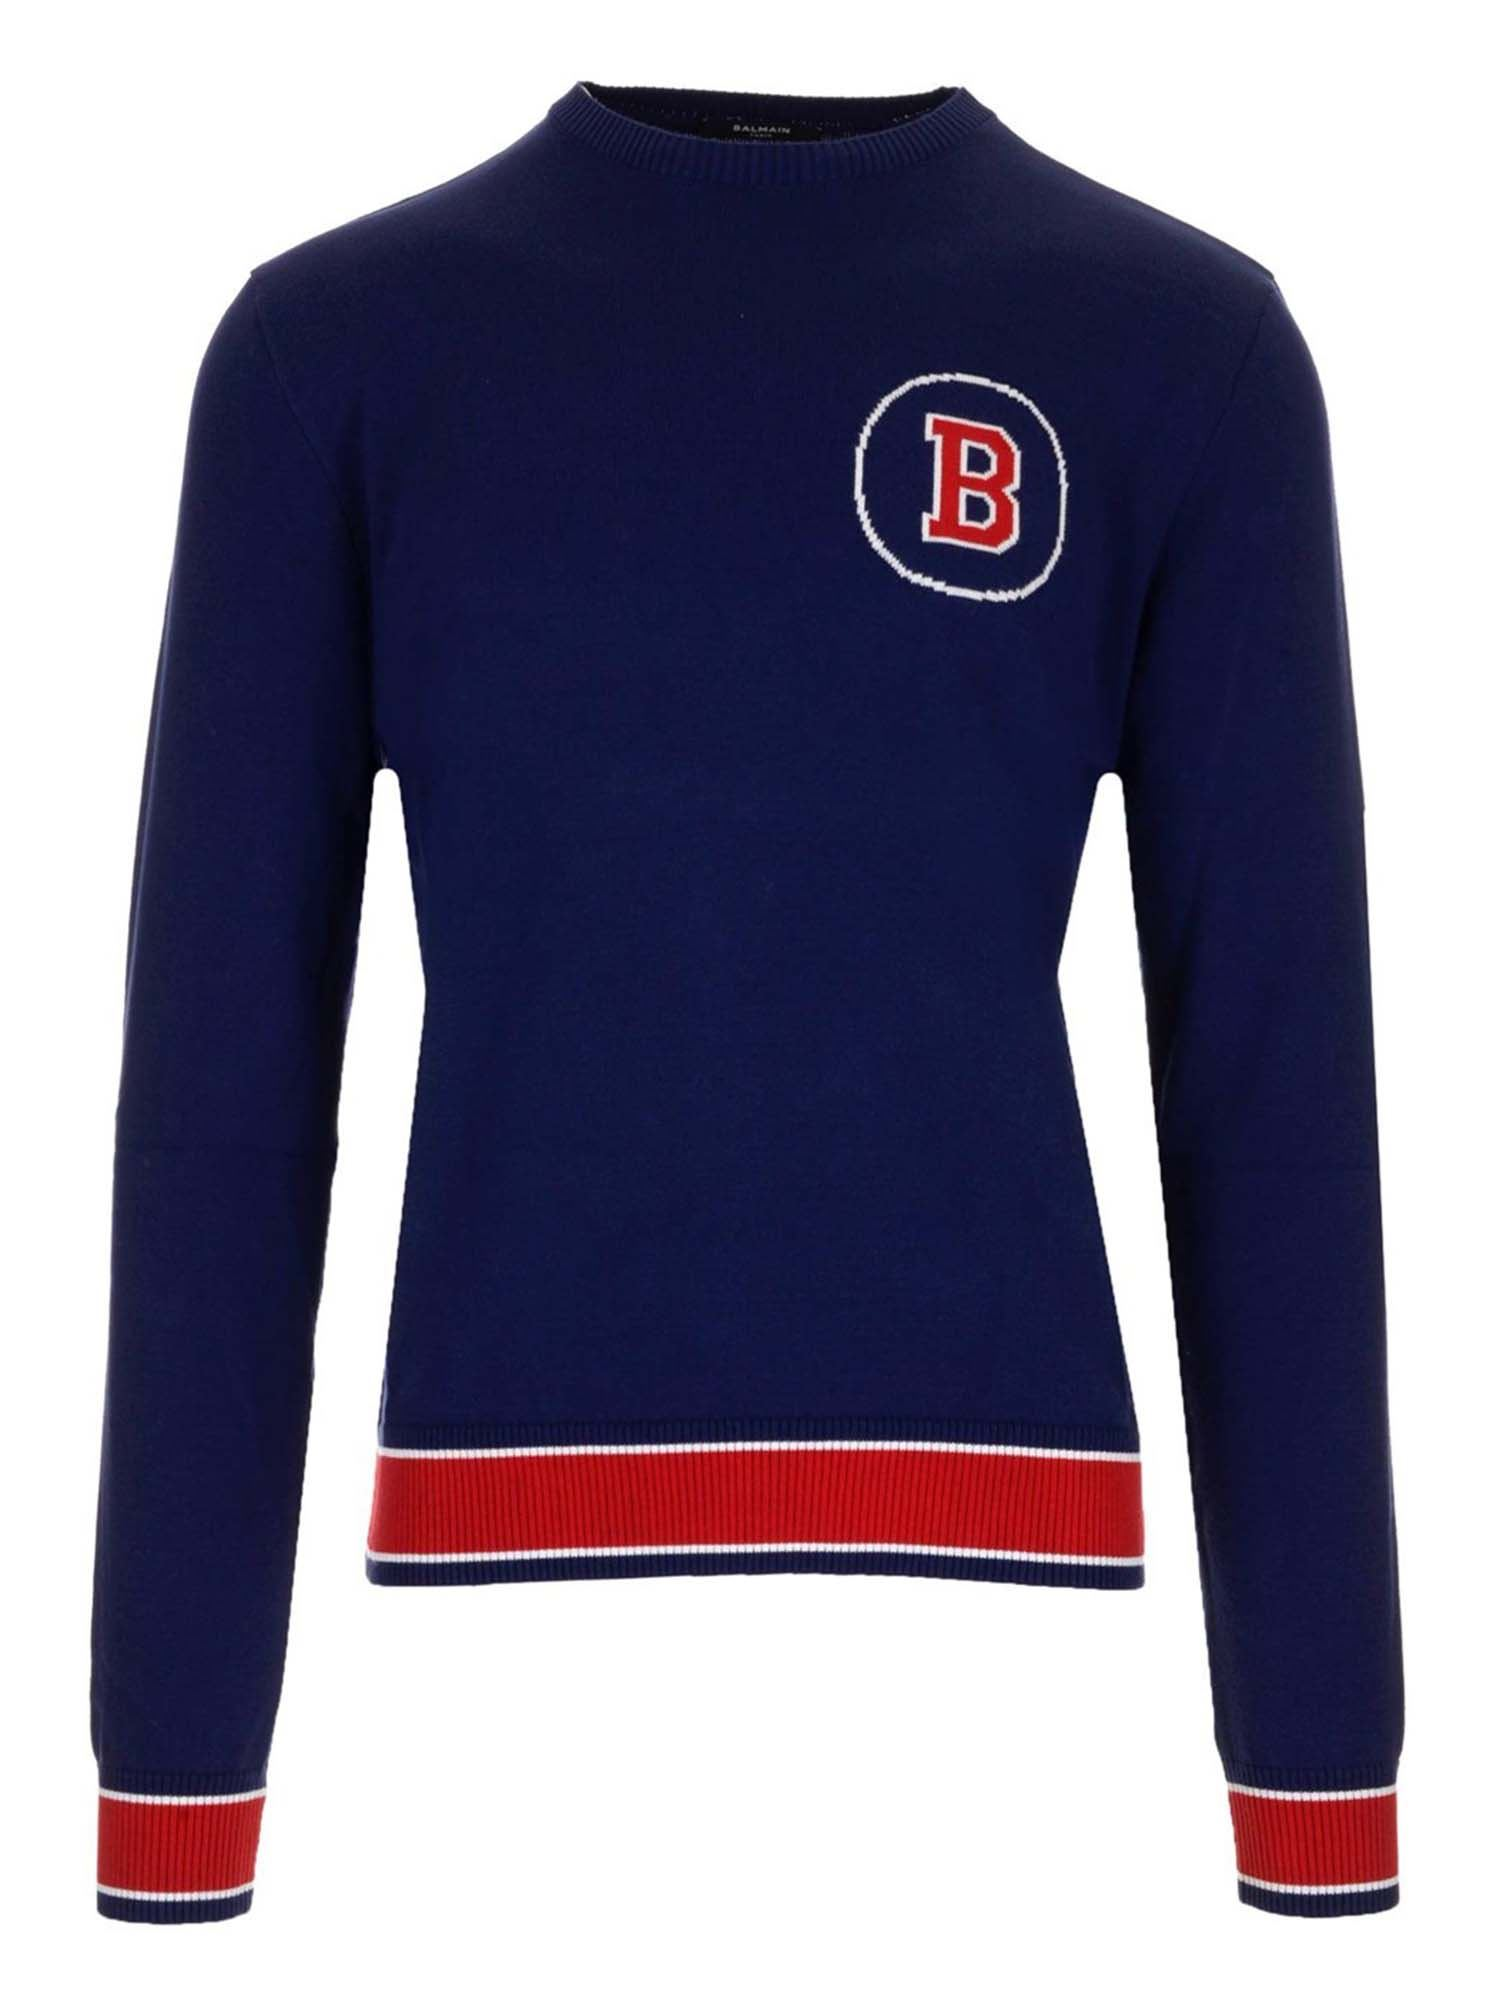 Balmain COLLEGE STYLE SWEATER IN BLUE